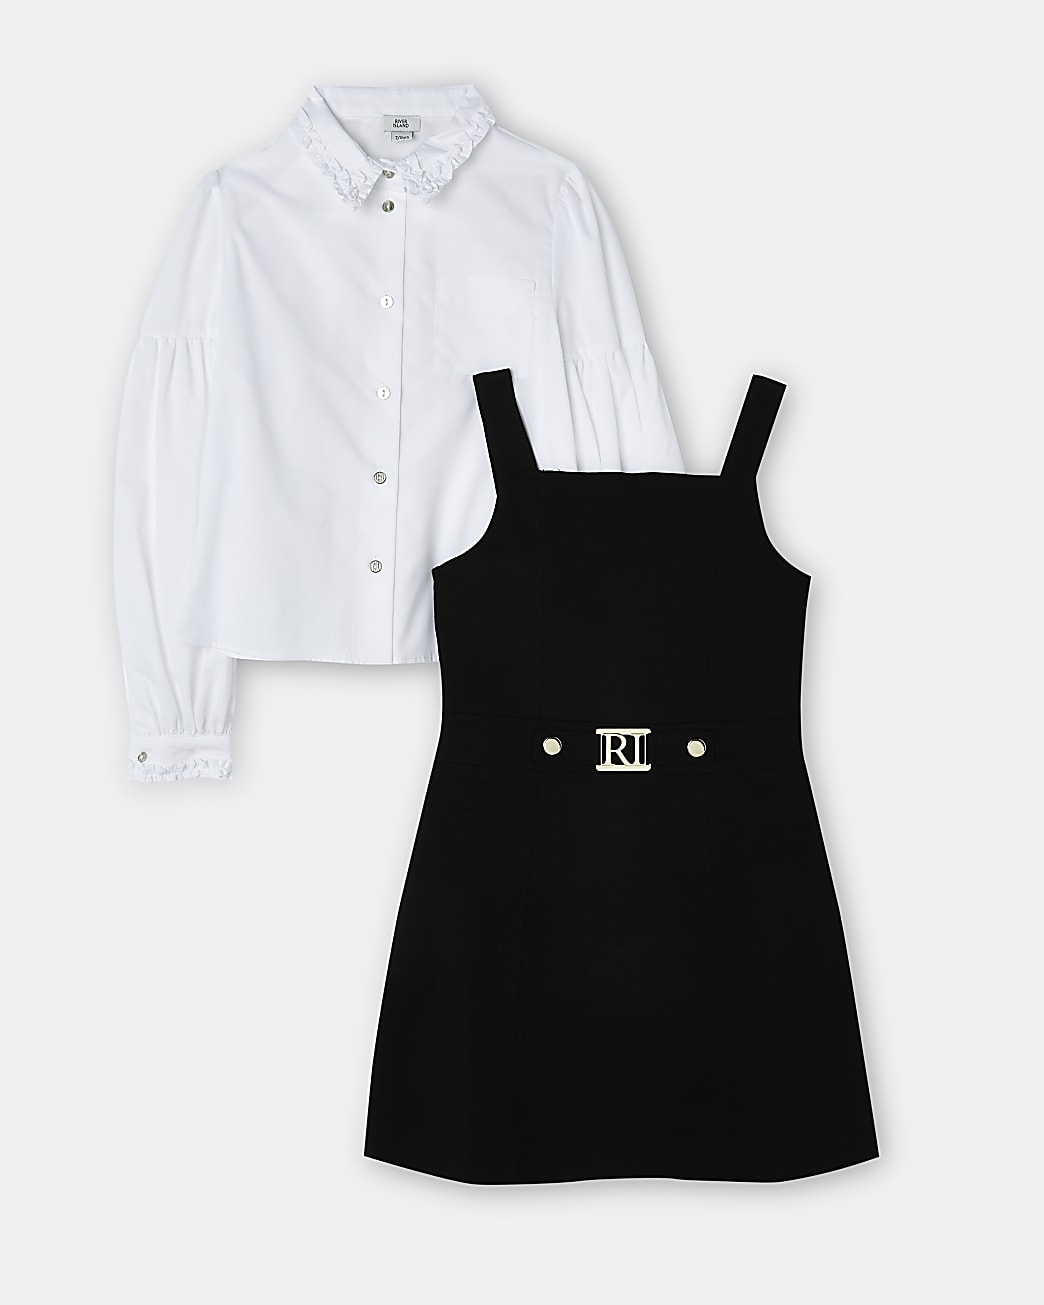 Girls black pinafore dress and shirt outfit